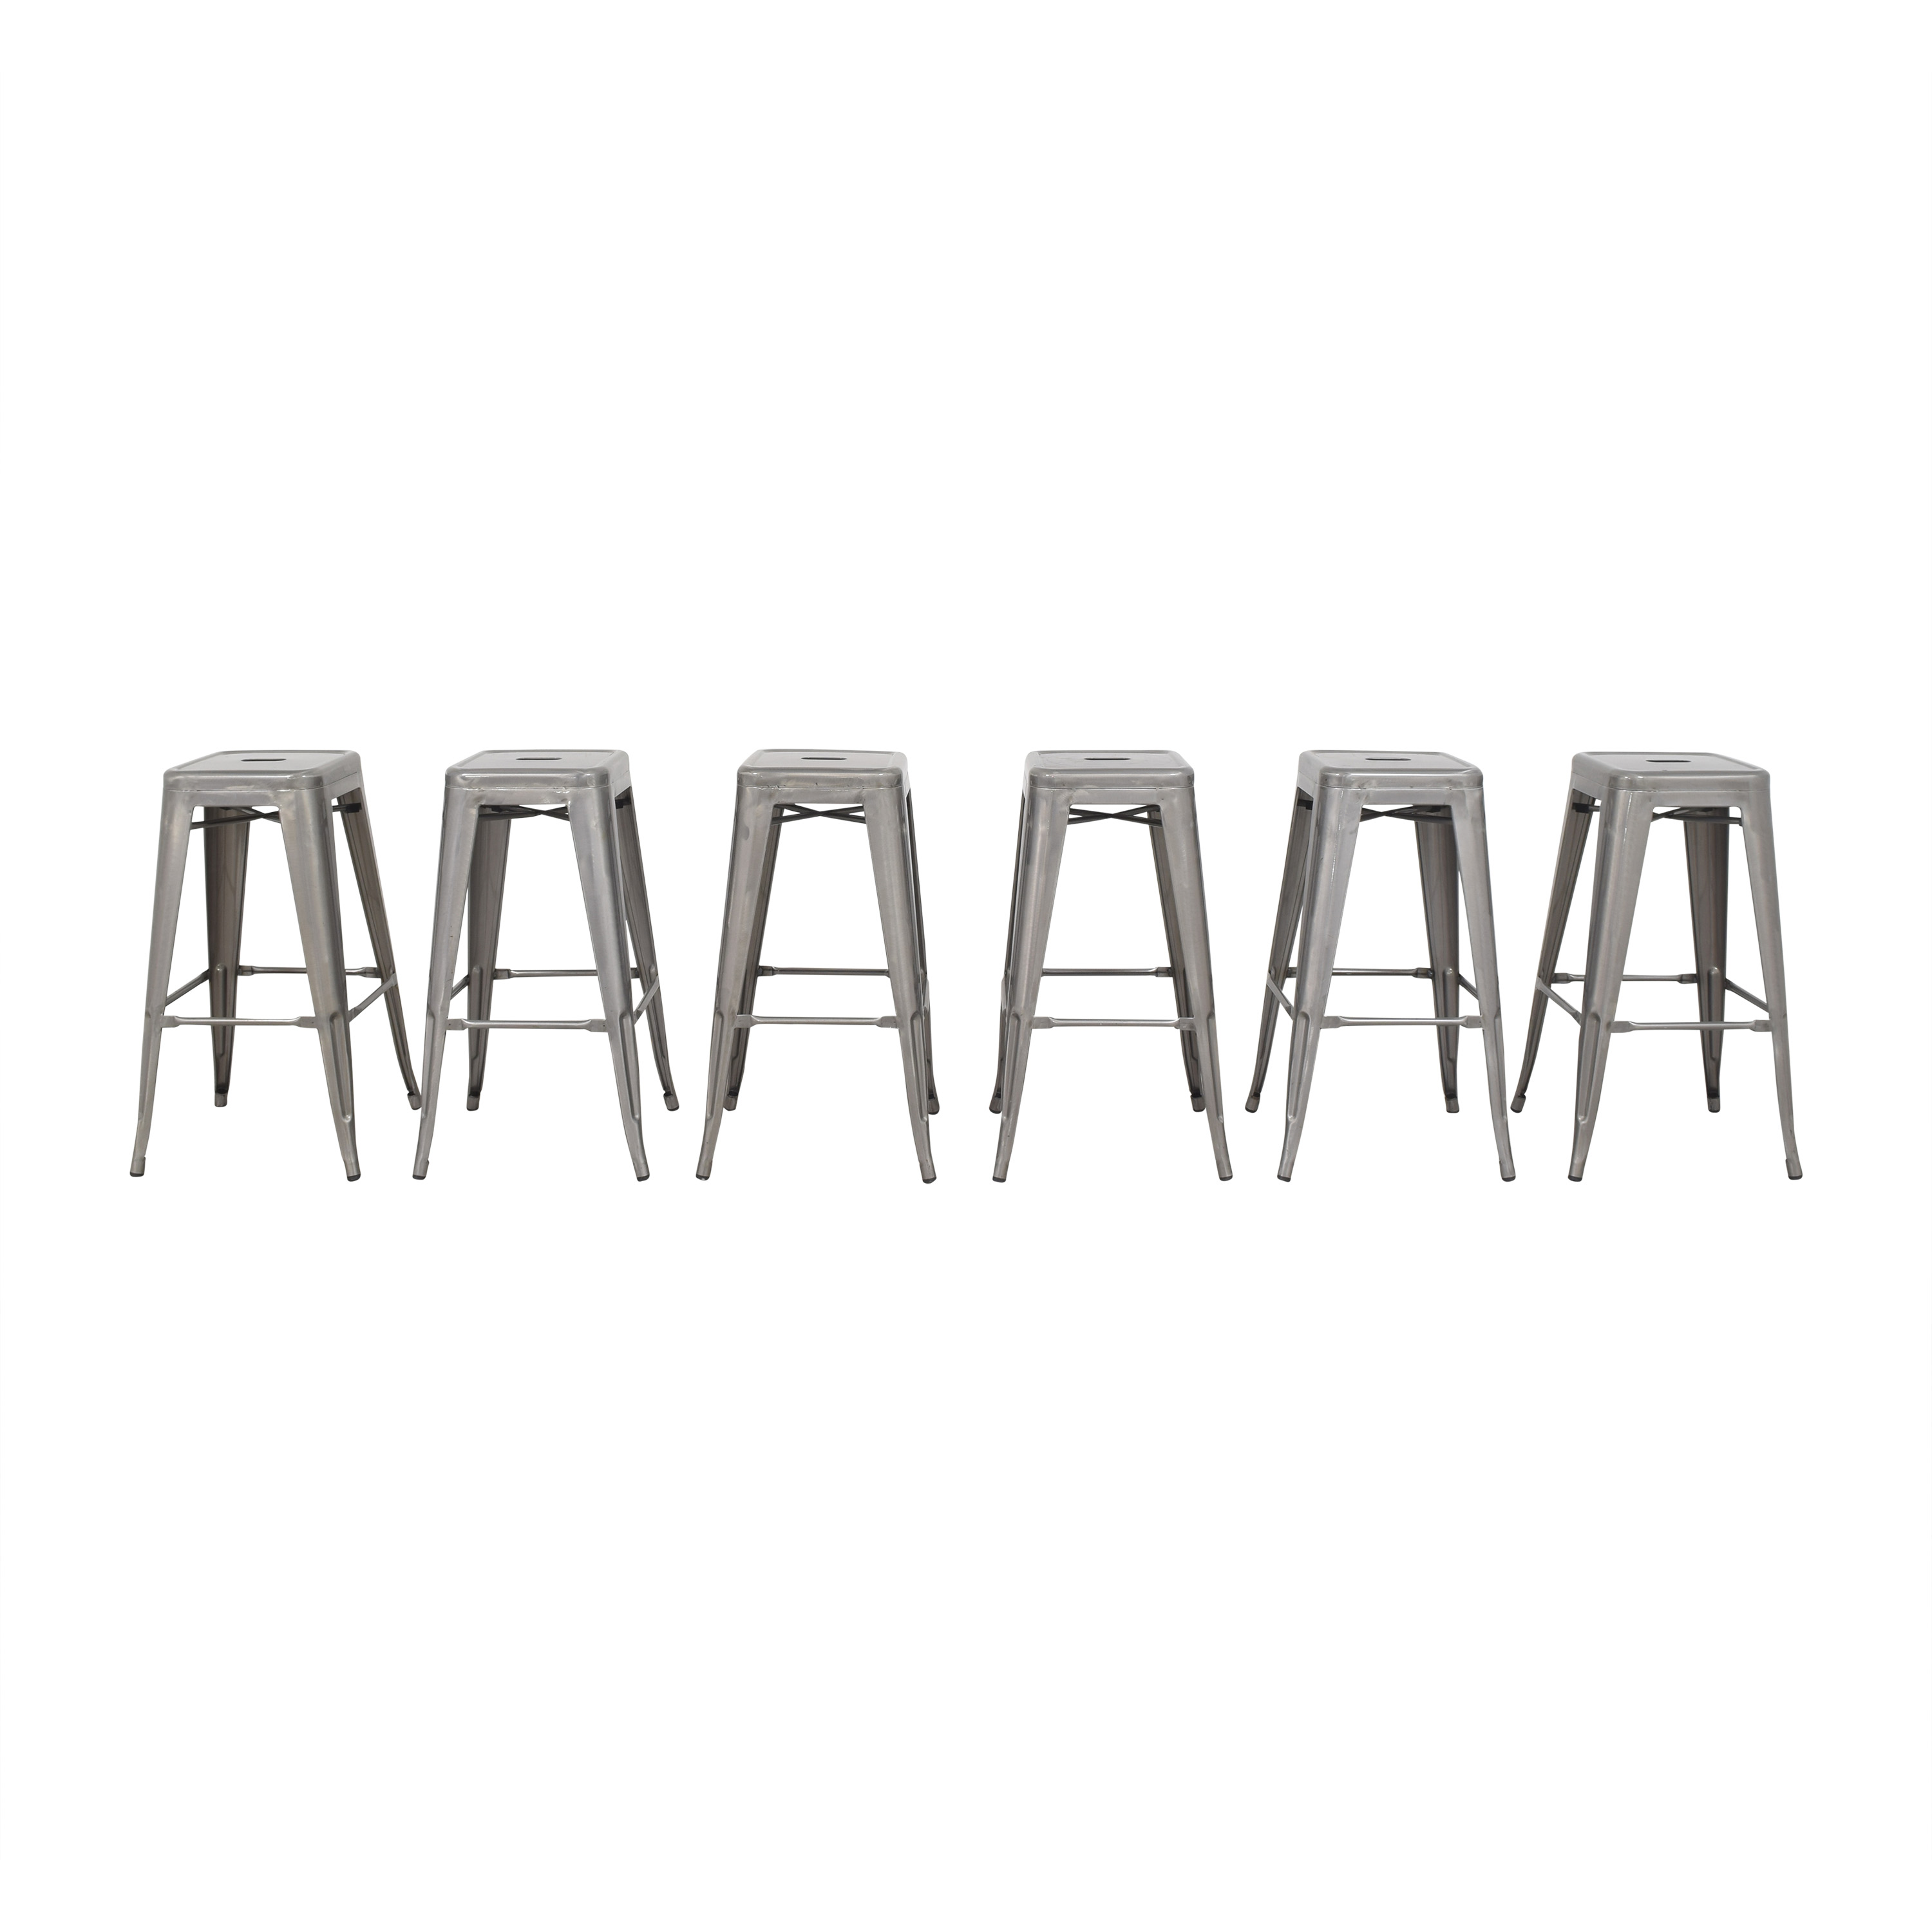 Adeco Trading Adeco Trading Modern Bar Stools coupon